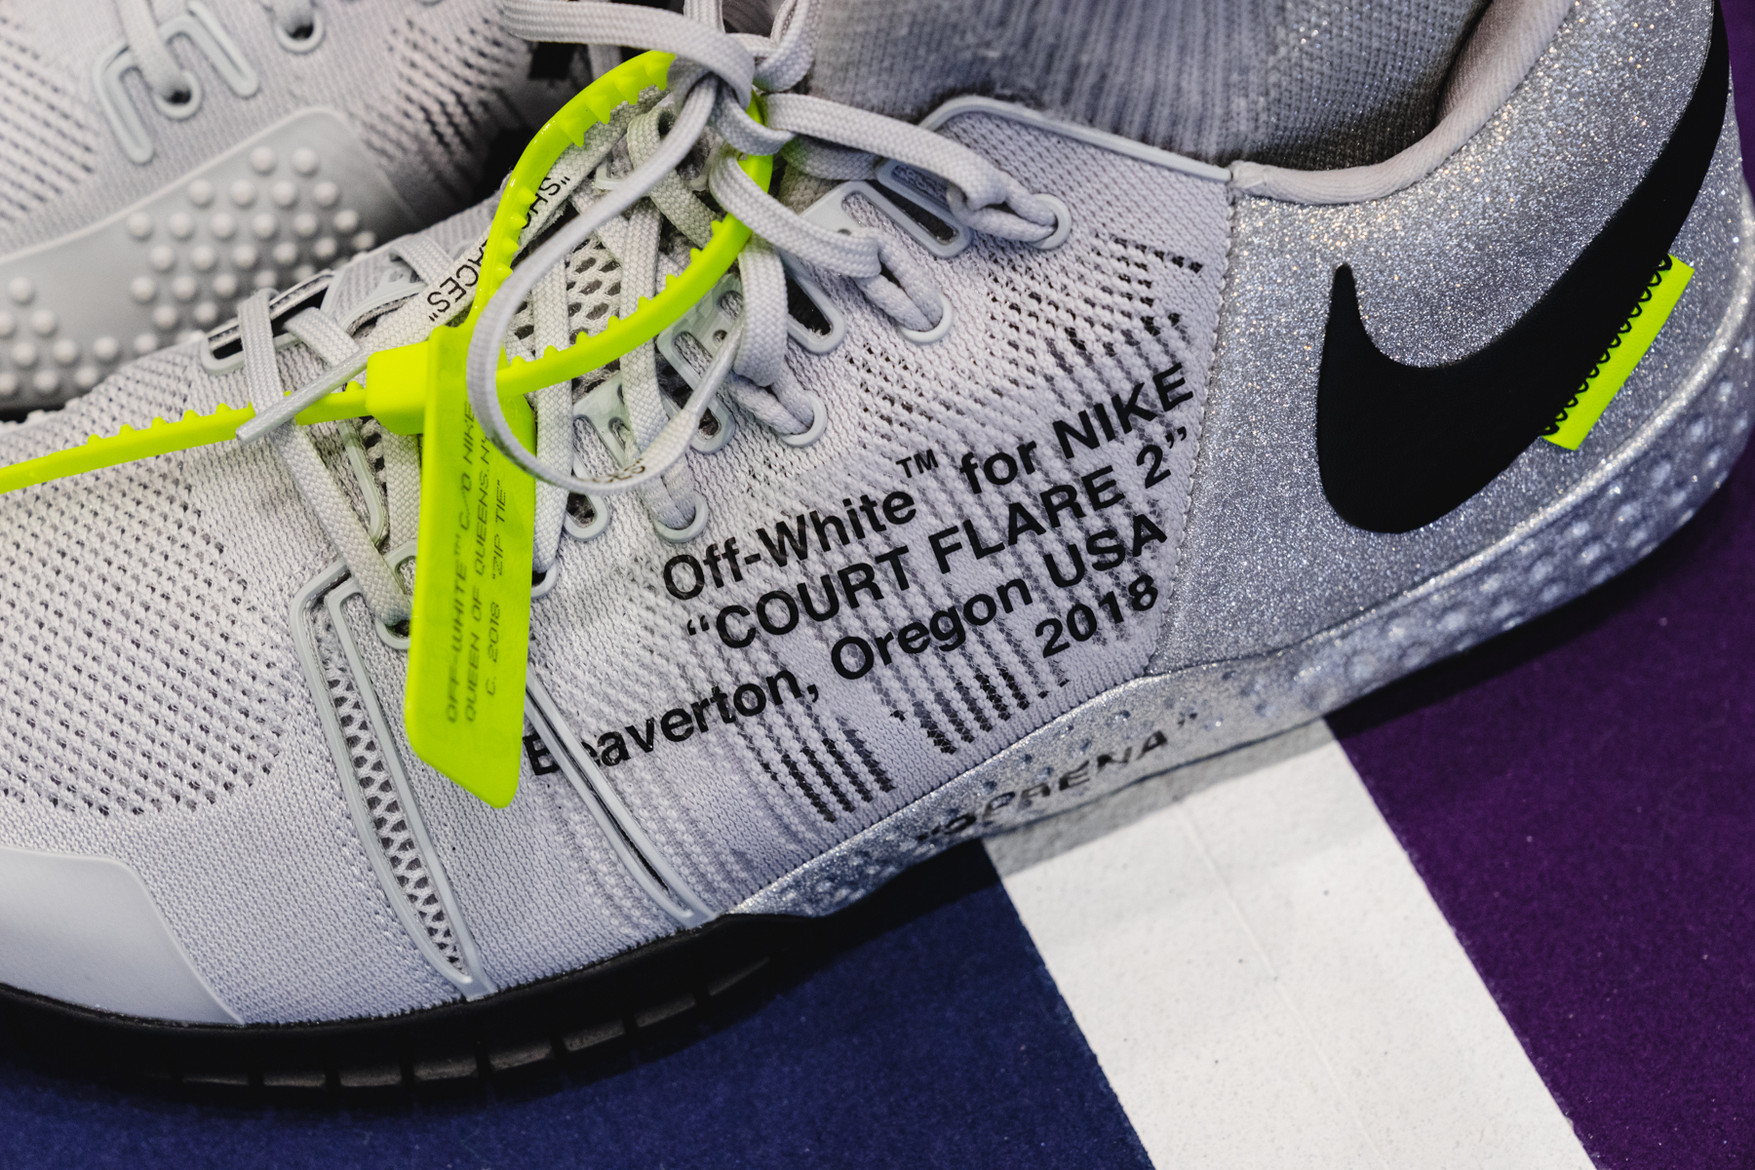 Serena Williams Off White X Nike Quot Queen Quot Collection